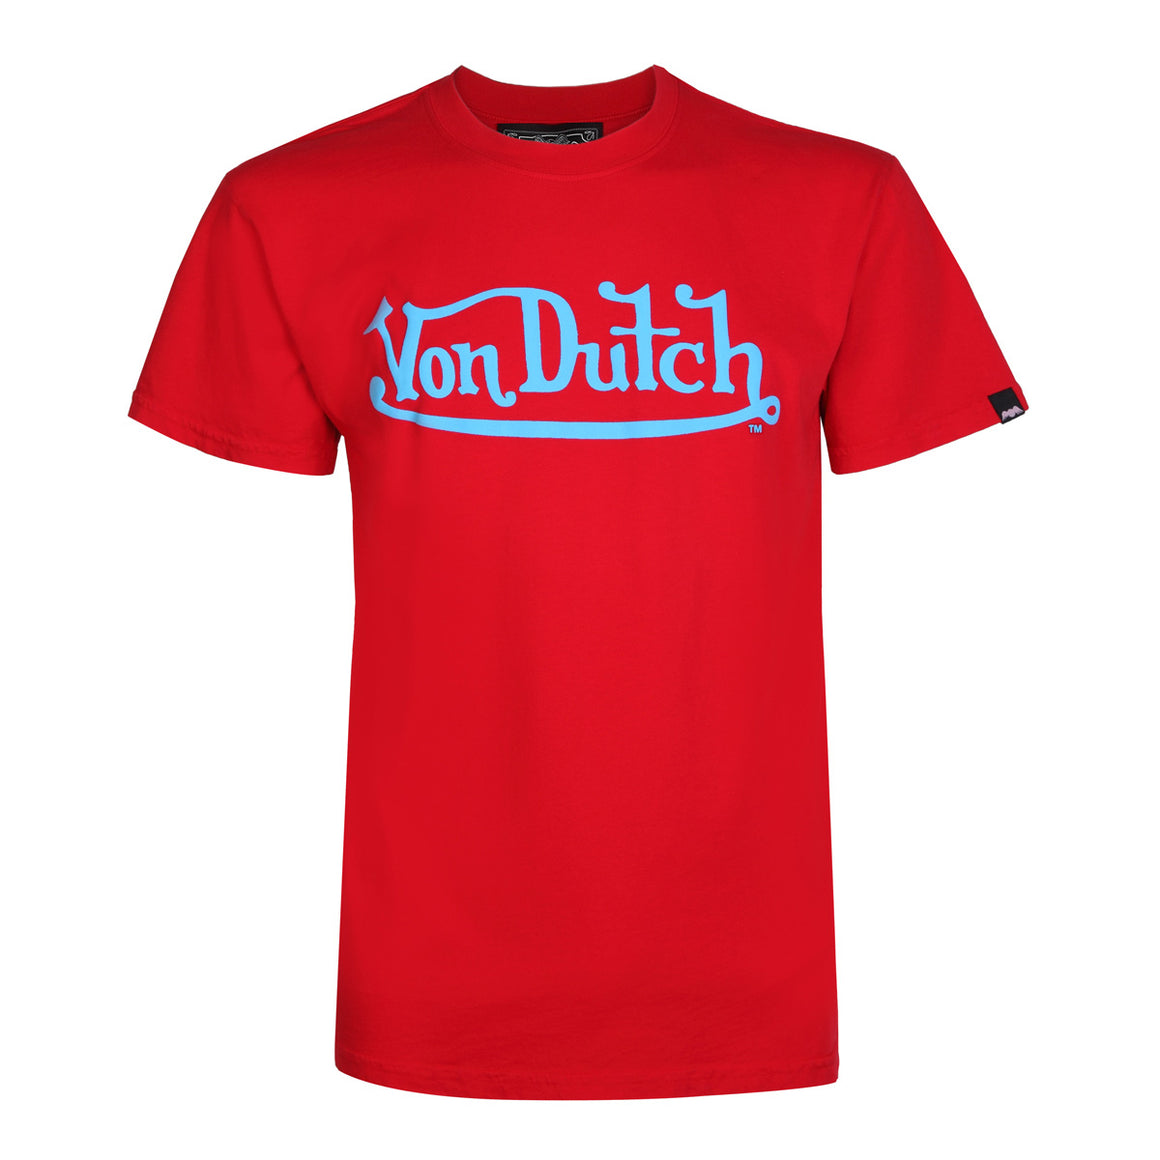 Red With Turquoise Classic Wordmark Tee